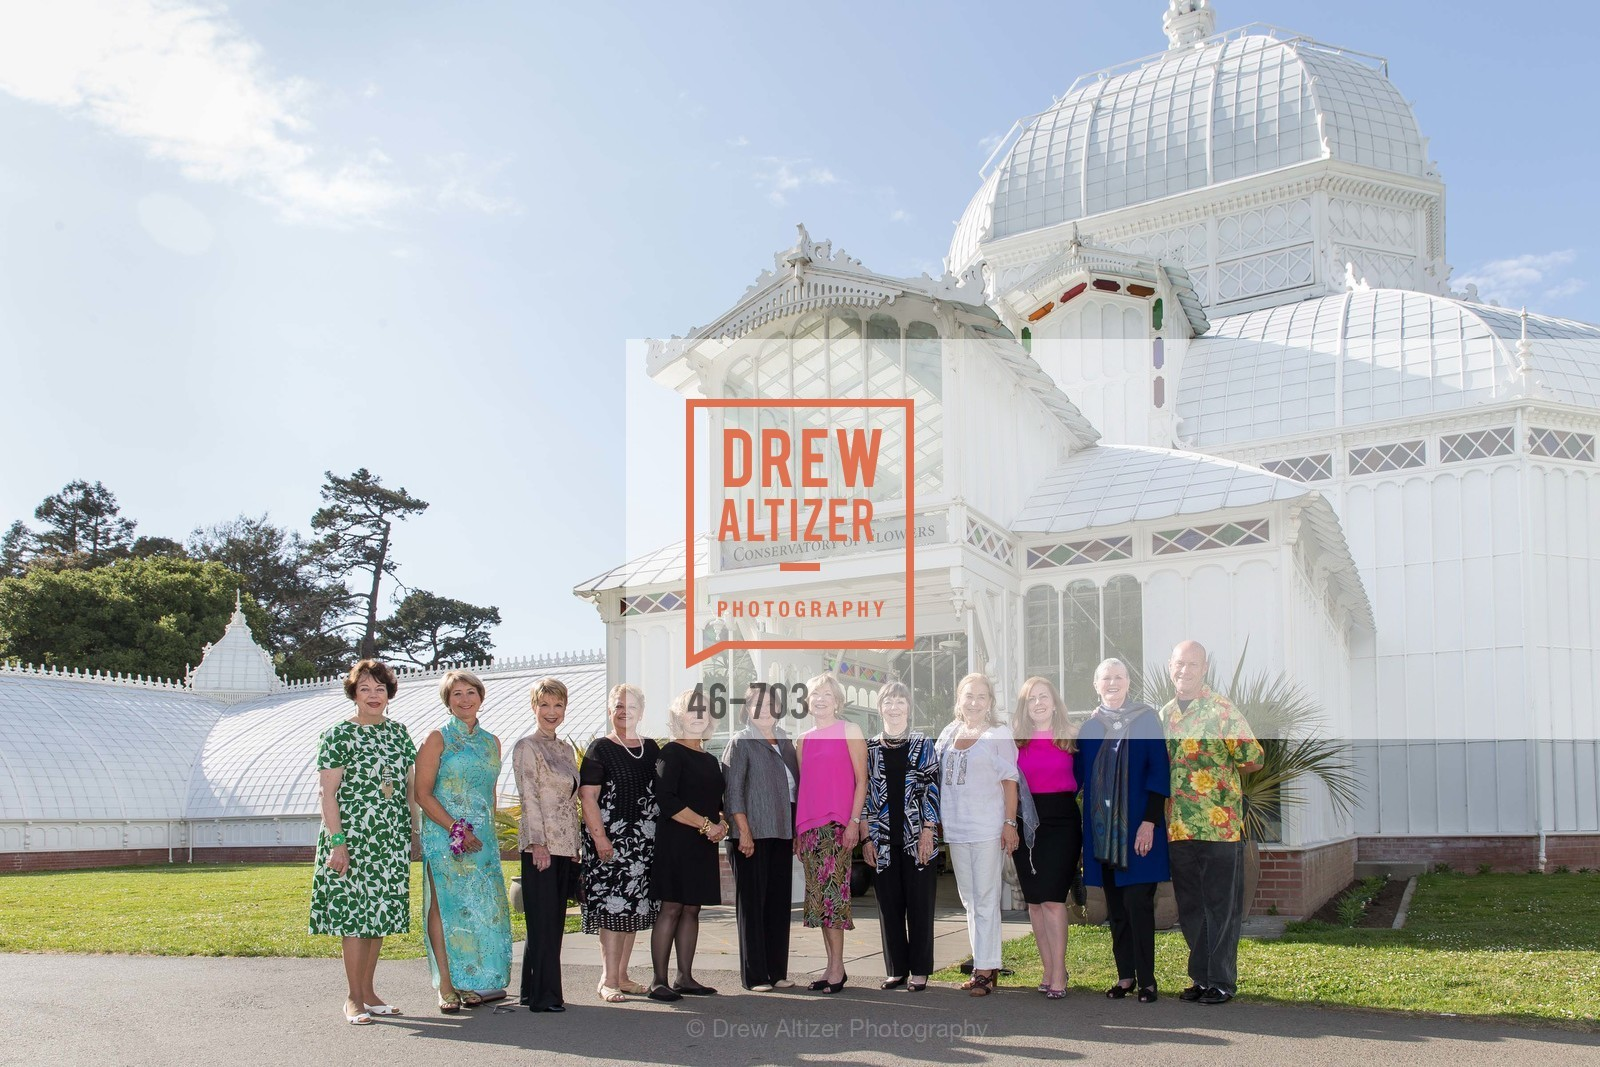 Ann Colvin, Terry Nevin, Martha Woollomes, Betty Packard, Sharon Collier, Terry Dolan, Jane Scurich, Donna Ellis, Natasha Hopkinson, Betsy Nichols, Pat Hanson-Thomson, Steven Brown, CONSERVATORY OF FLOWERS Presents